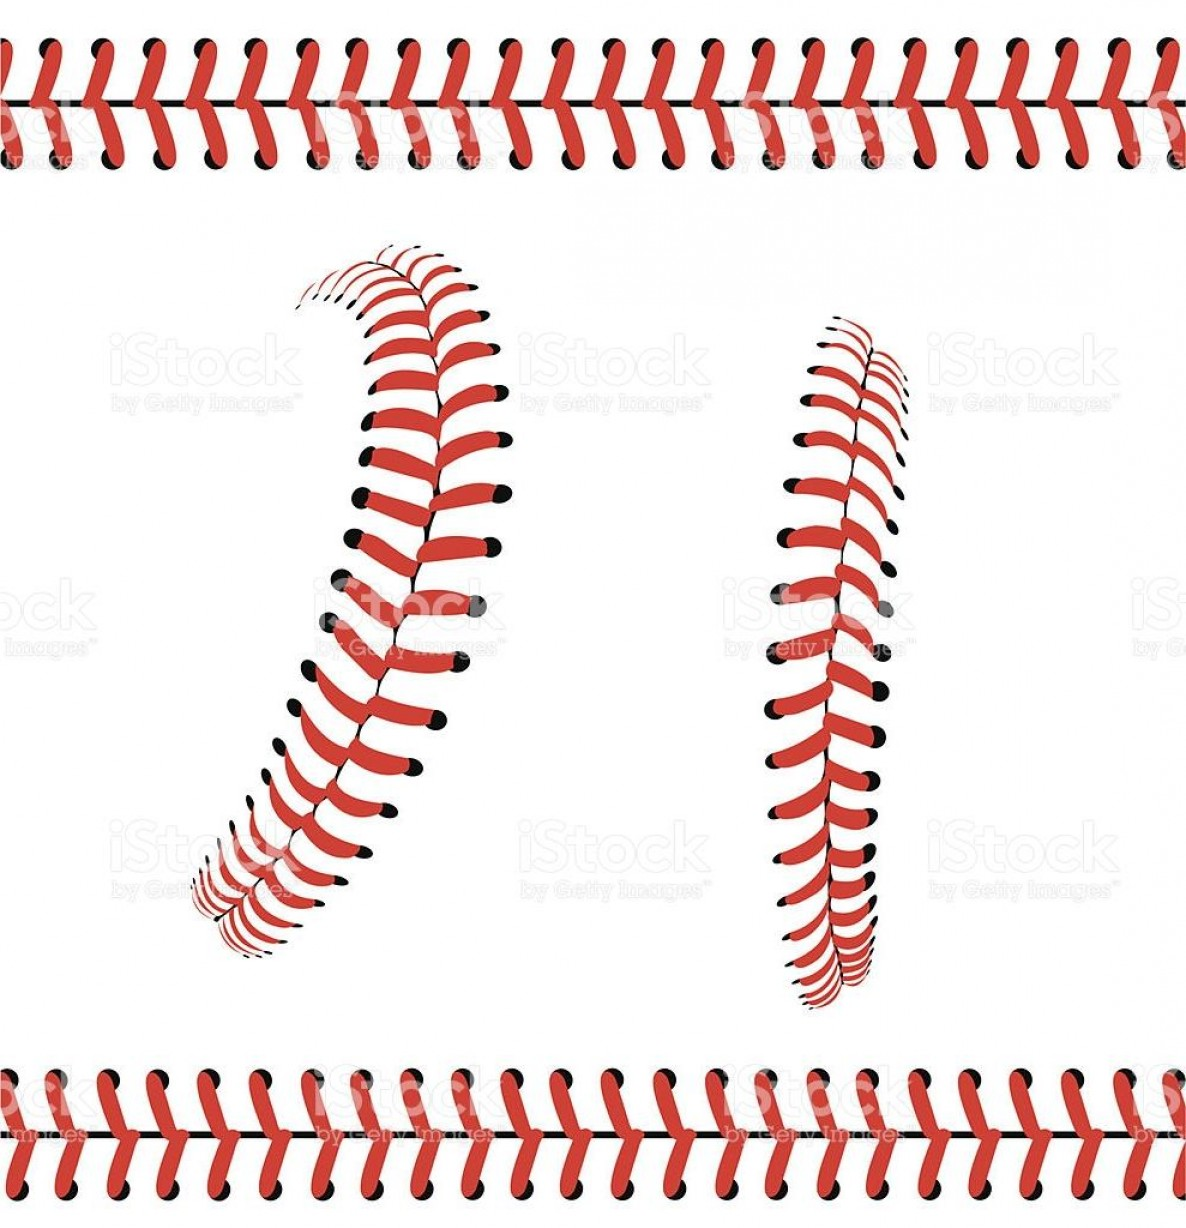 Laces Basball Vector: Best Hd Baseball Stitches Or Laces Graphic Pattern Vector Drawing